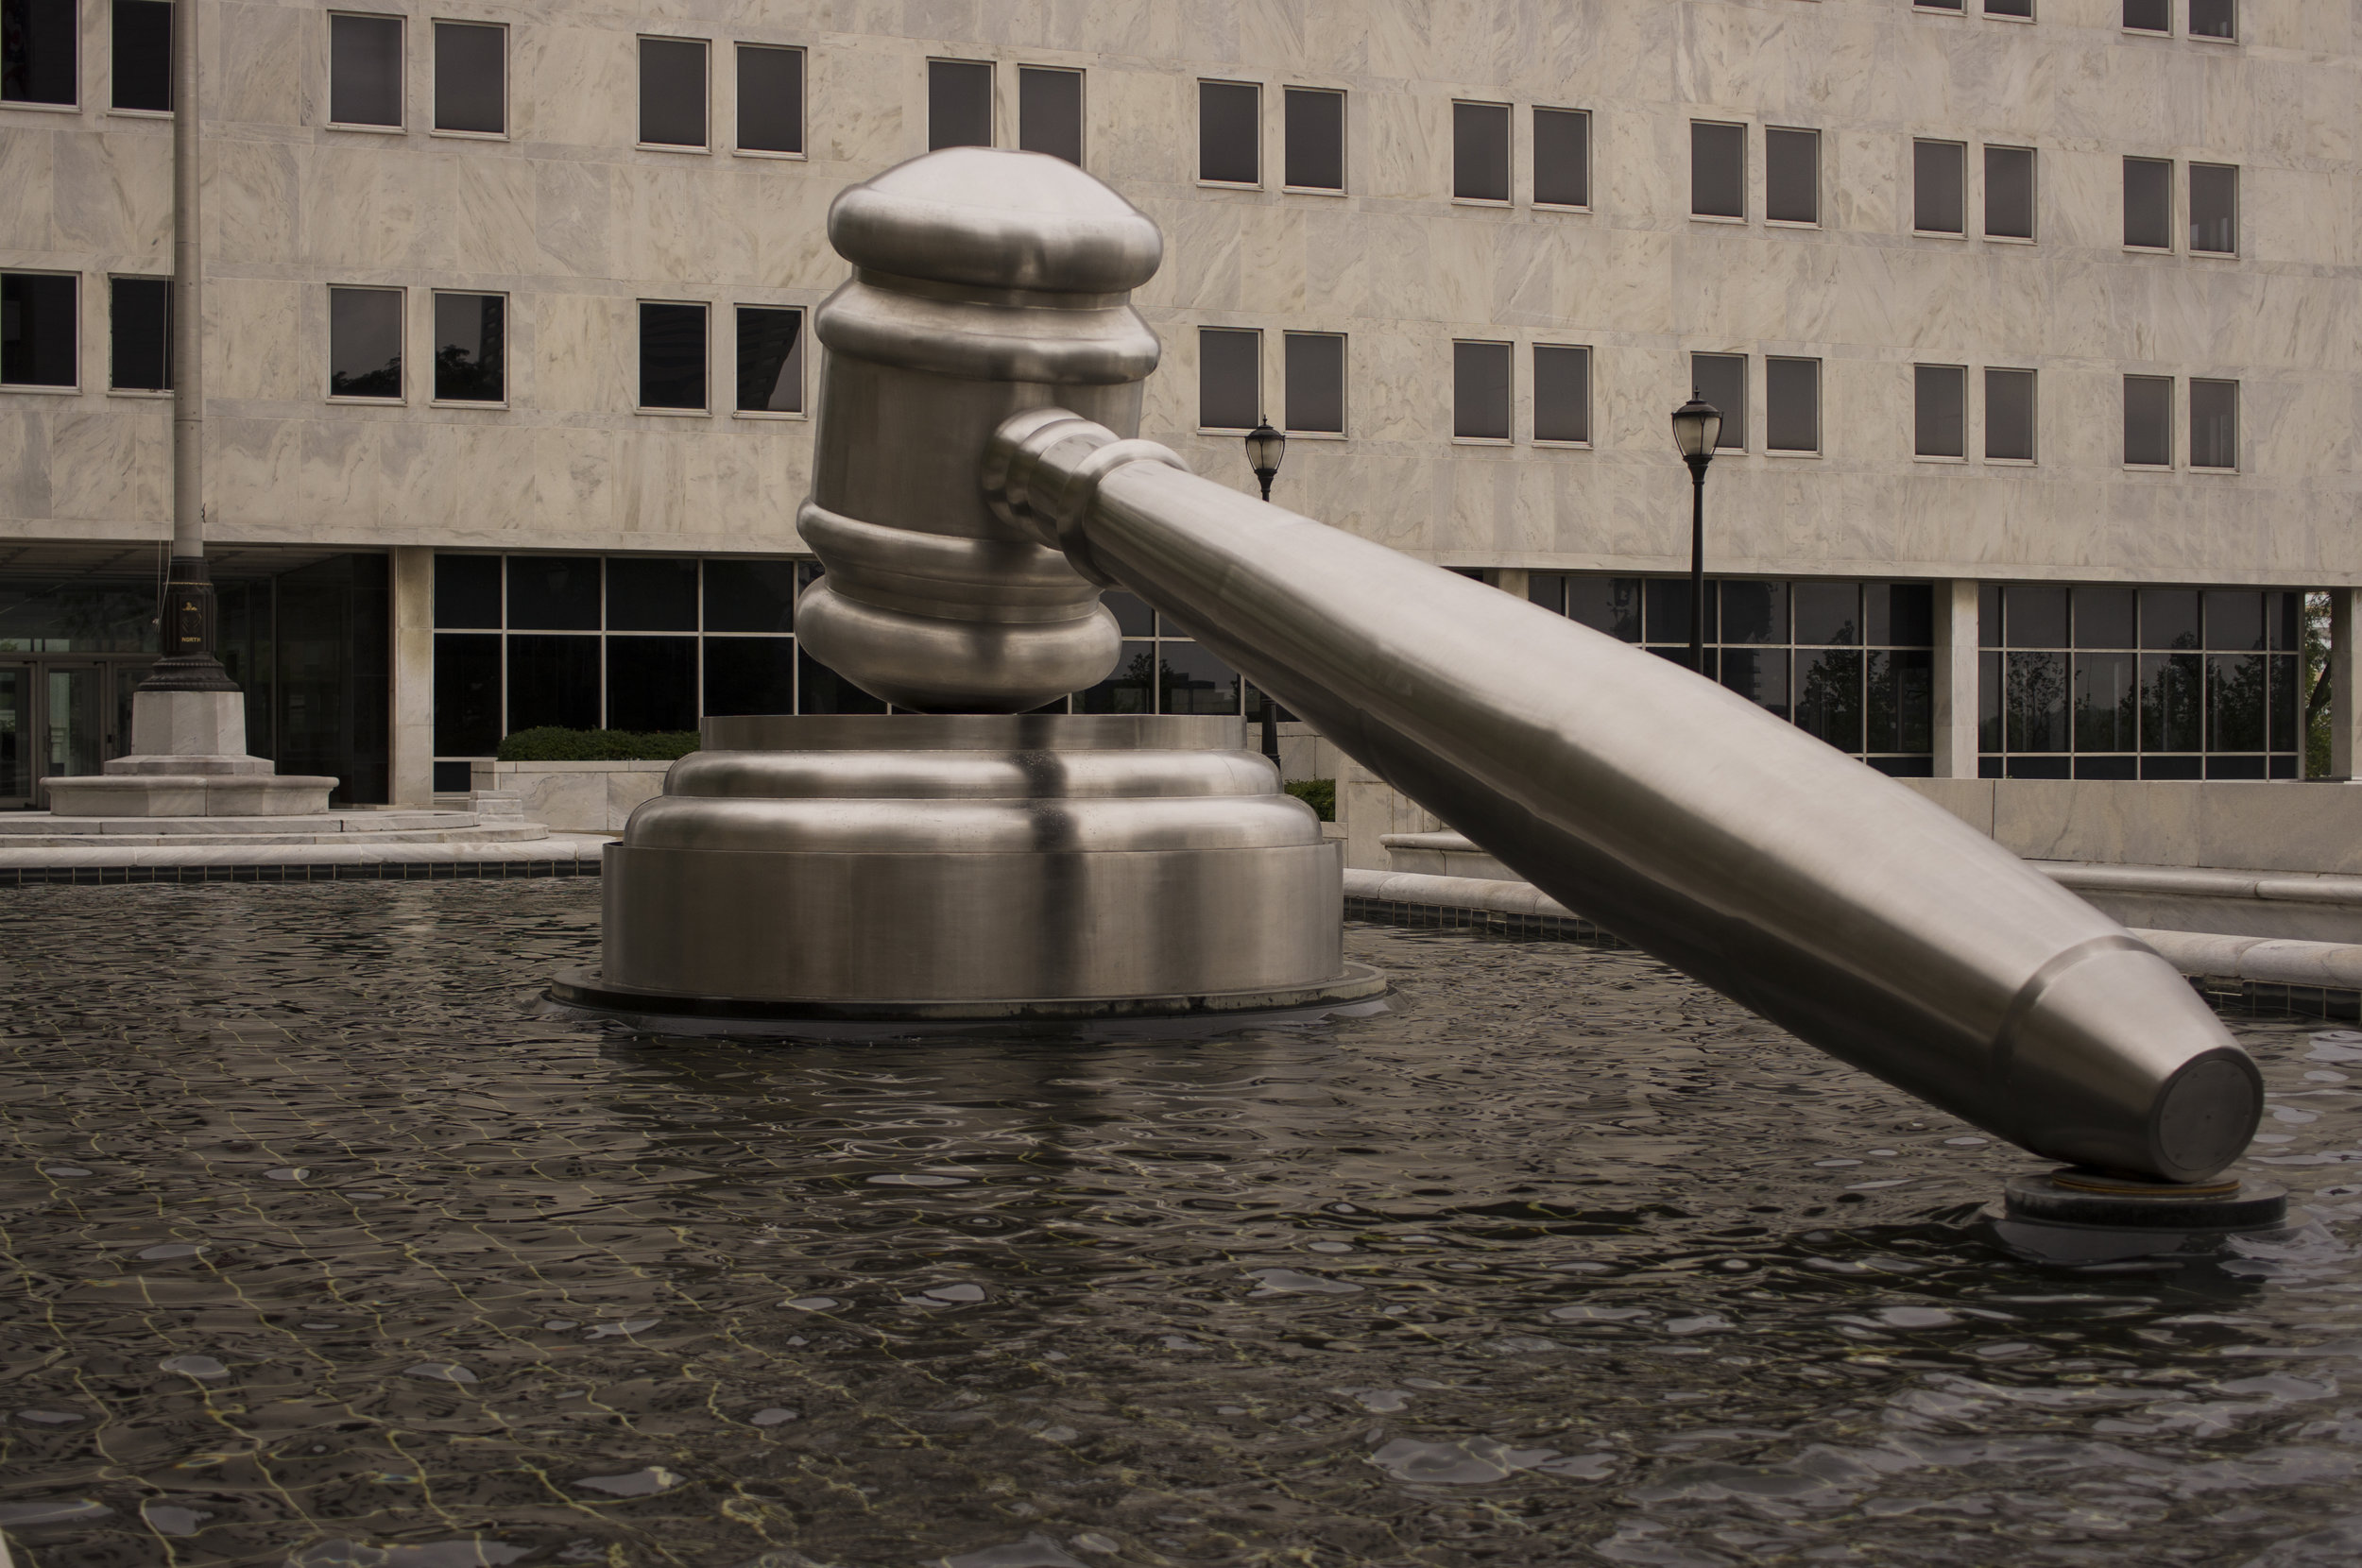 Gavel outside the Ohio State Supreme Court courthouse. Photo: Brian Rodgers/flickr